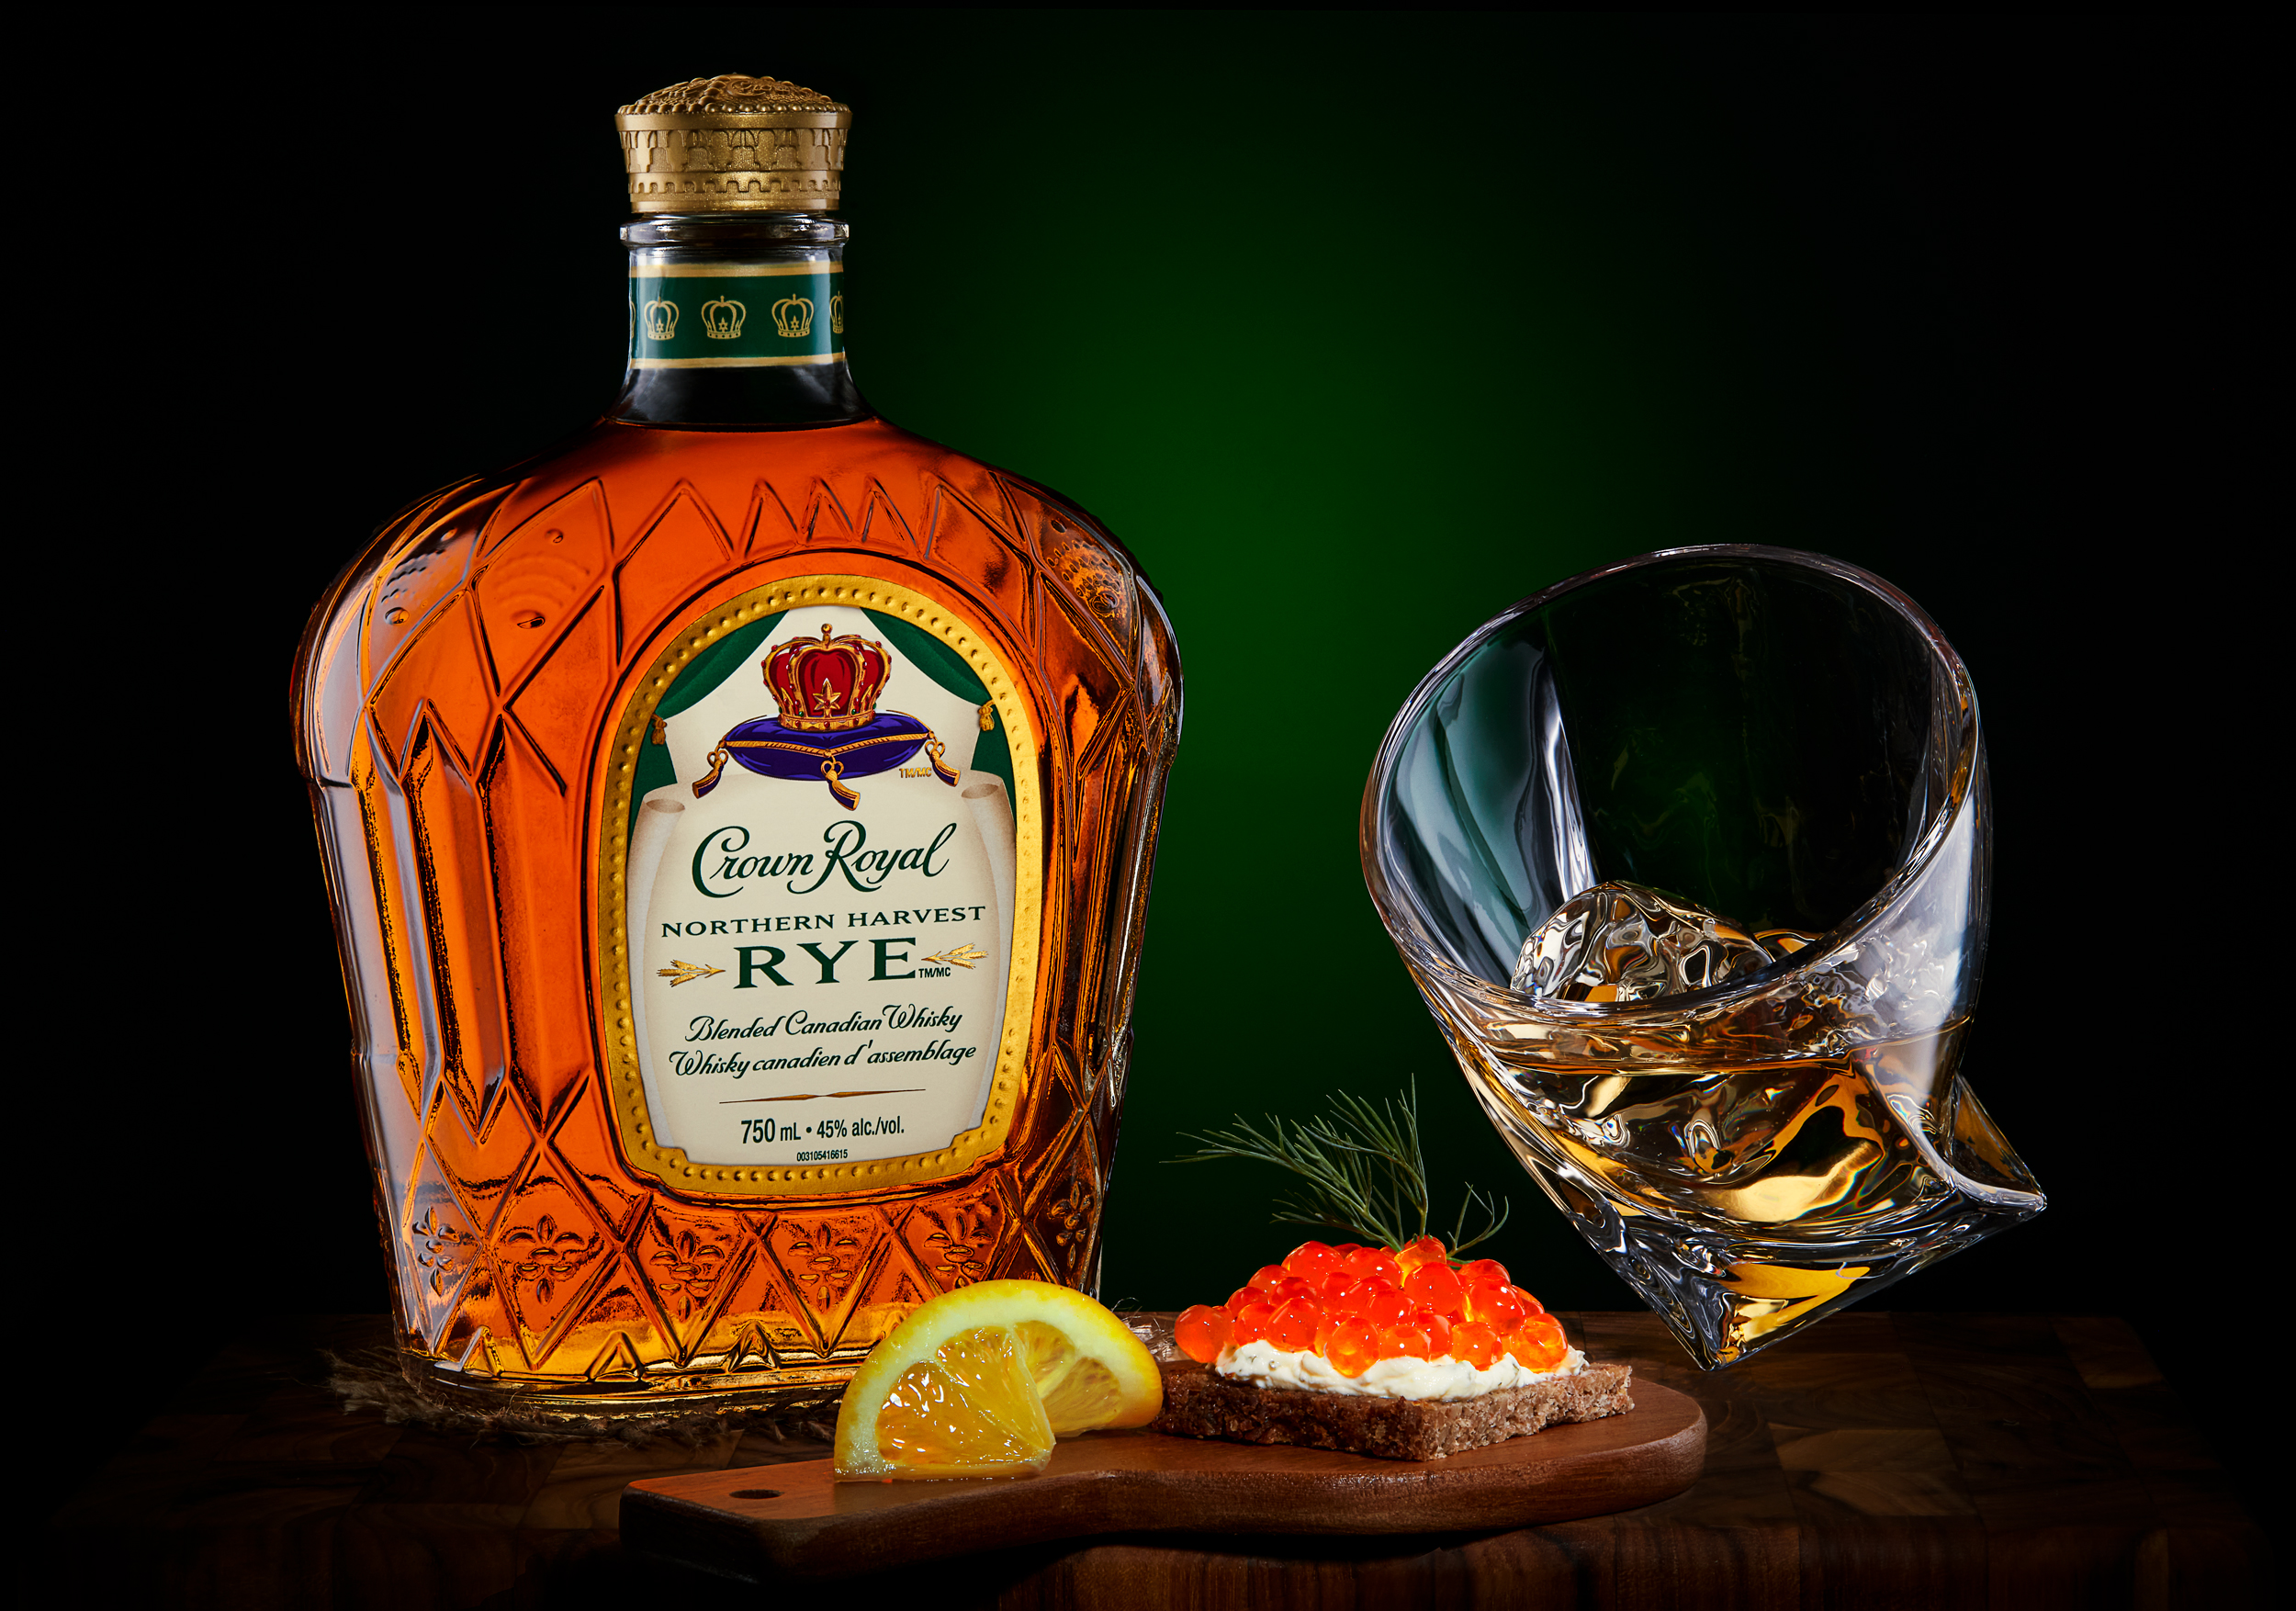 Crown Royal RYE Whisky.